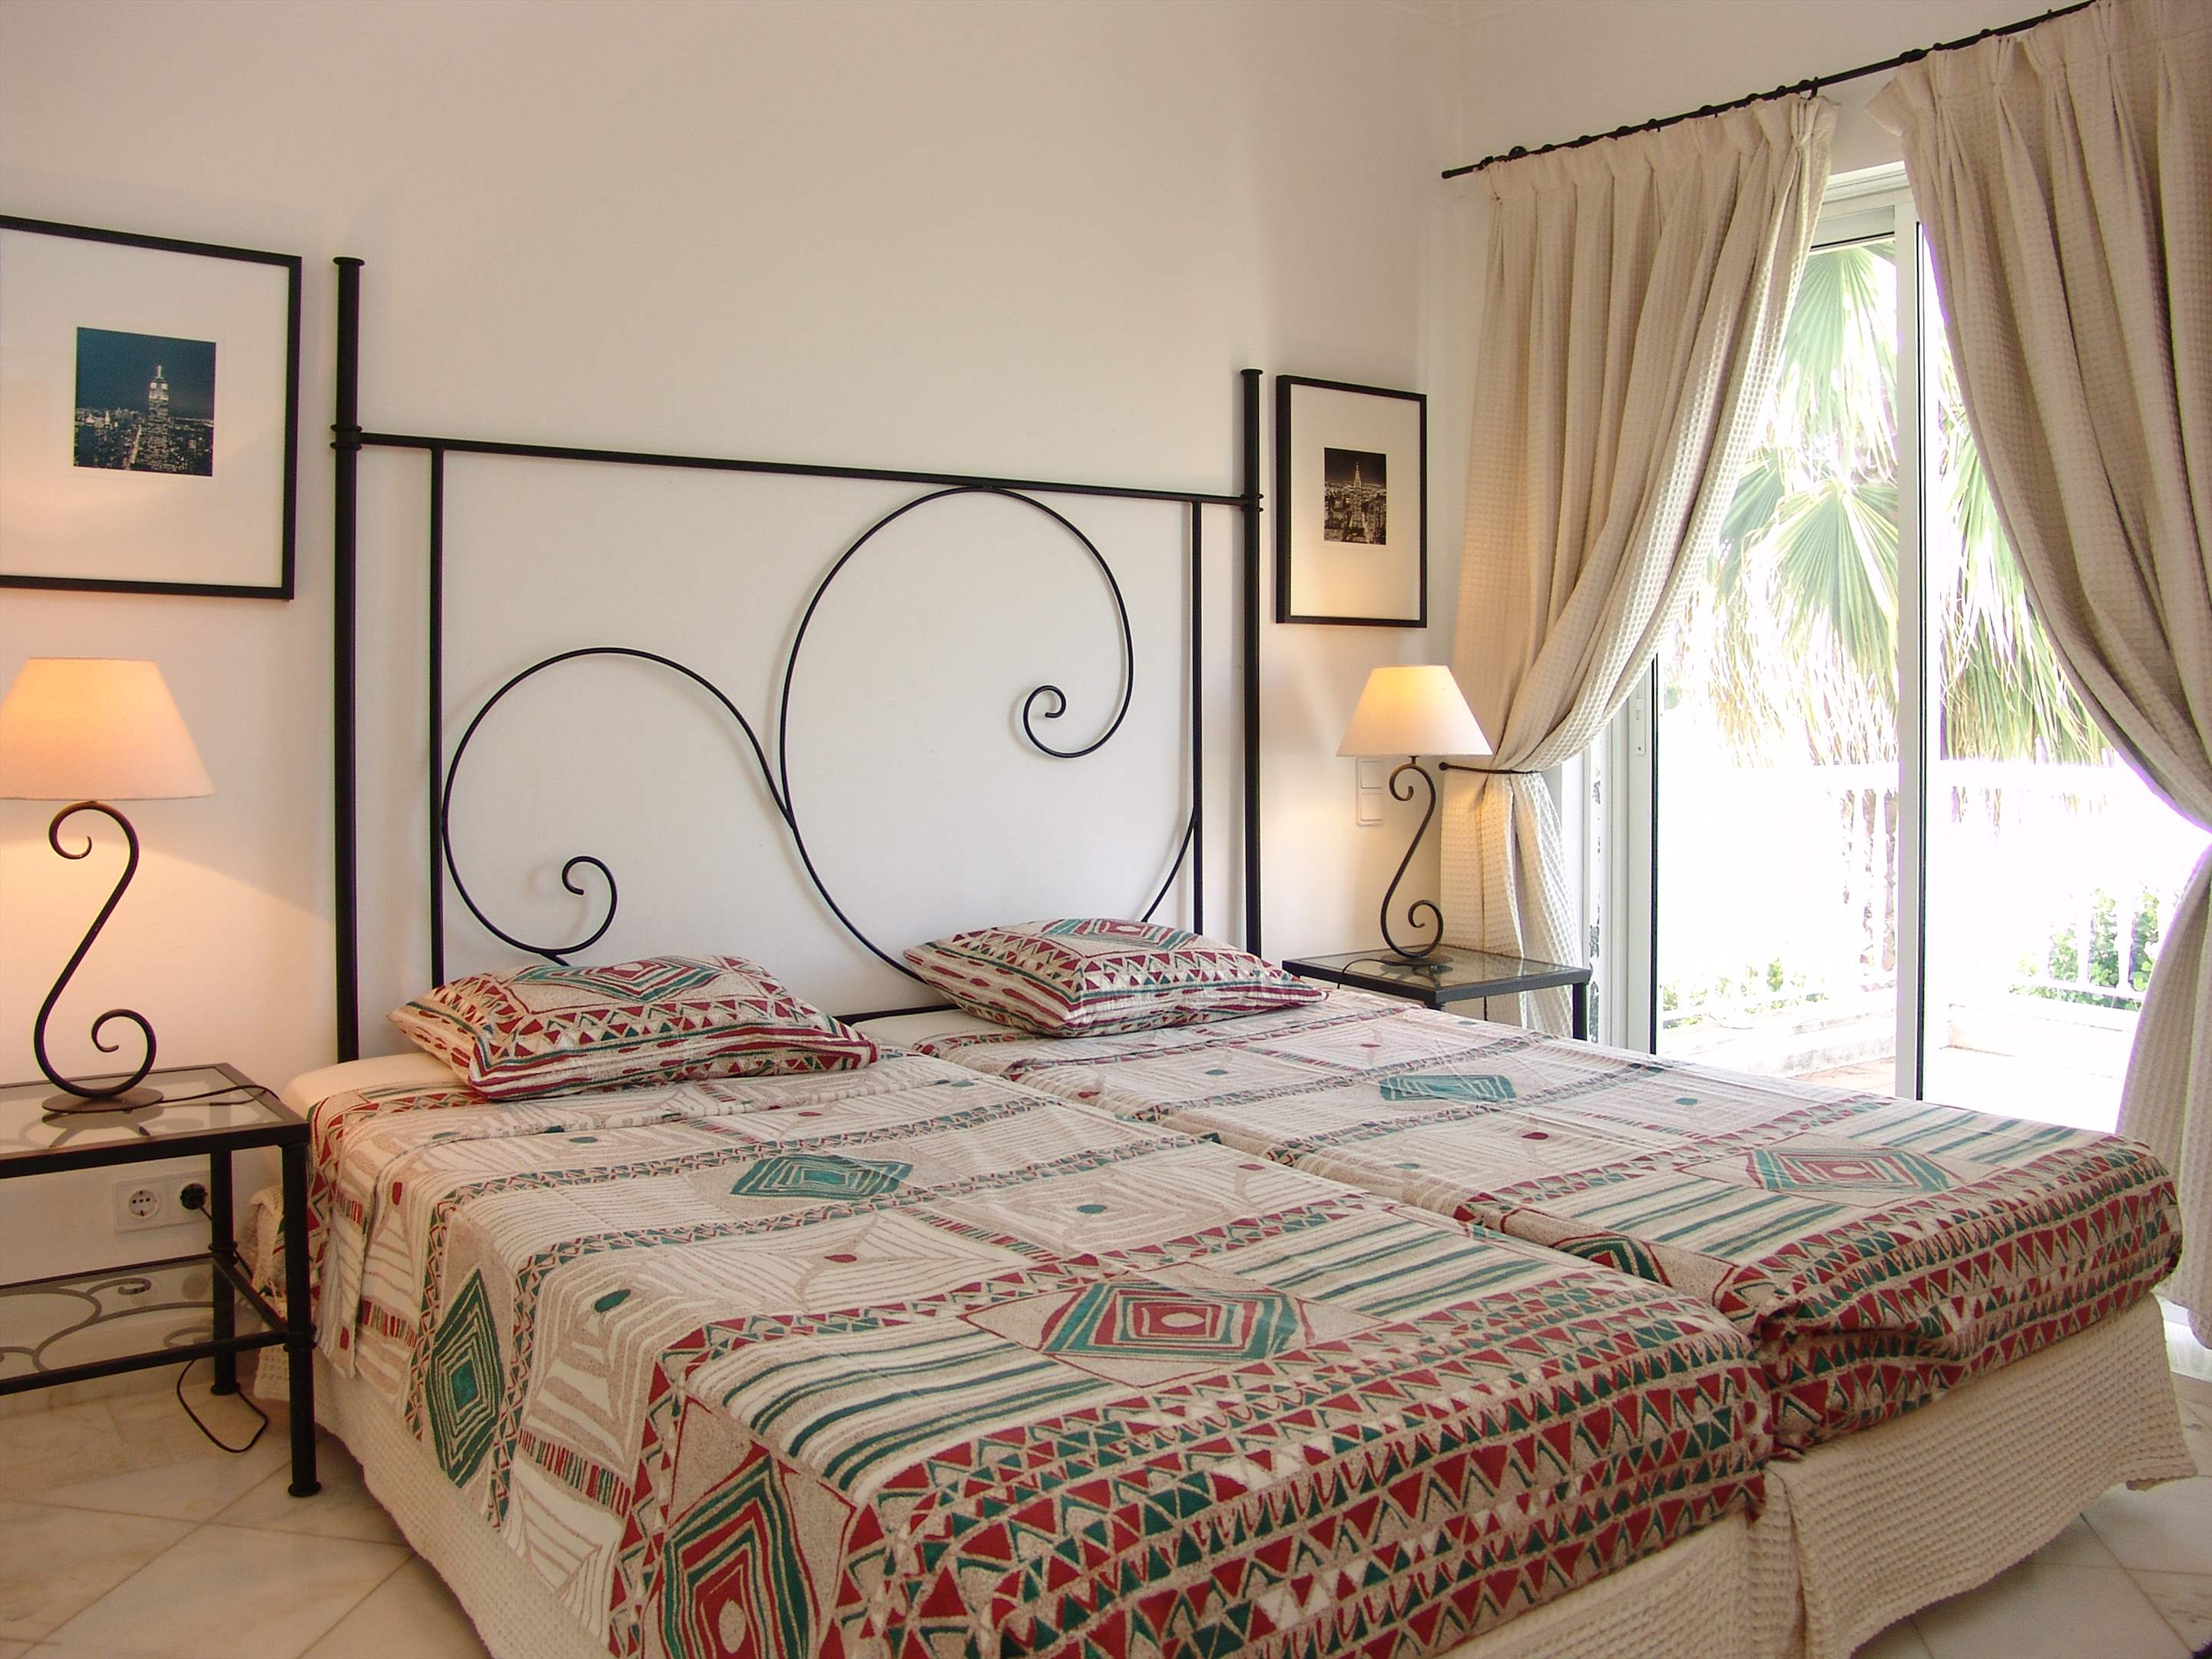 Villas Louisa, 3 bedroom, 3 bedroom villa in Vale do Lobo, Algarve Photo #21